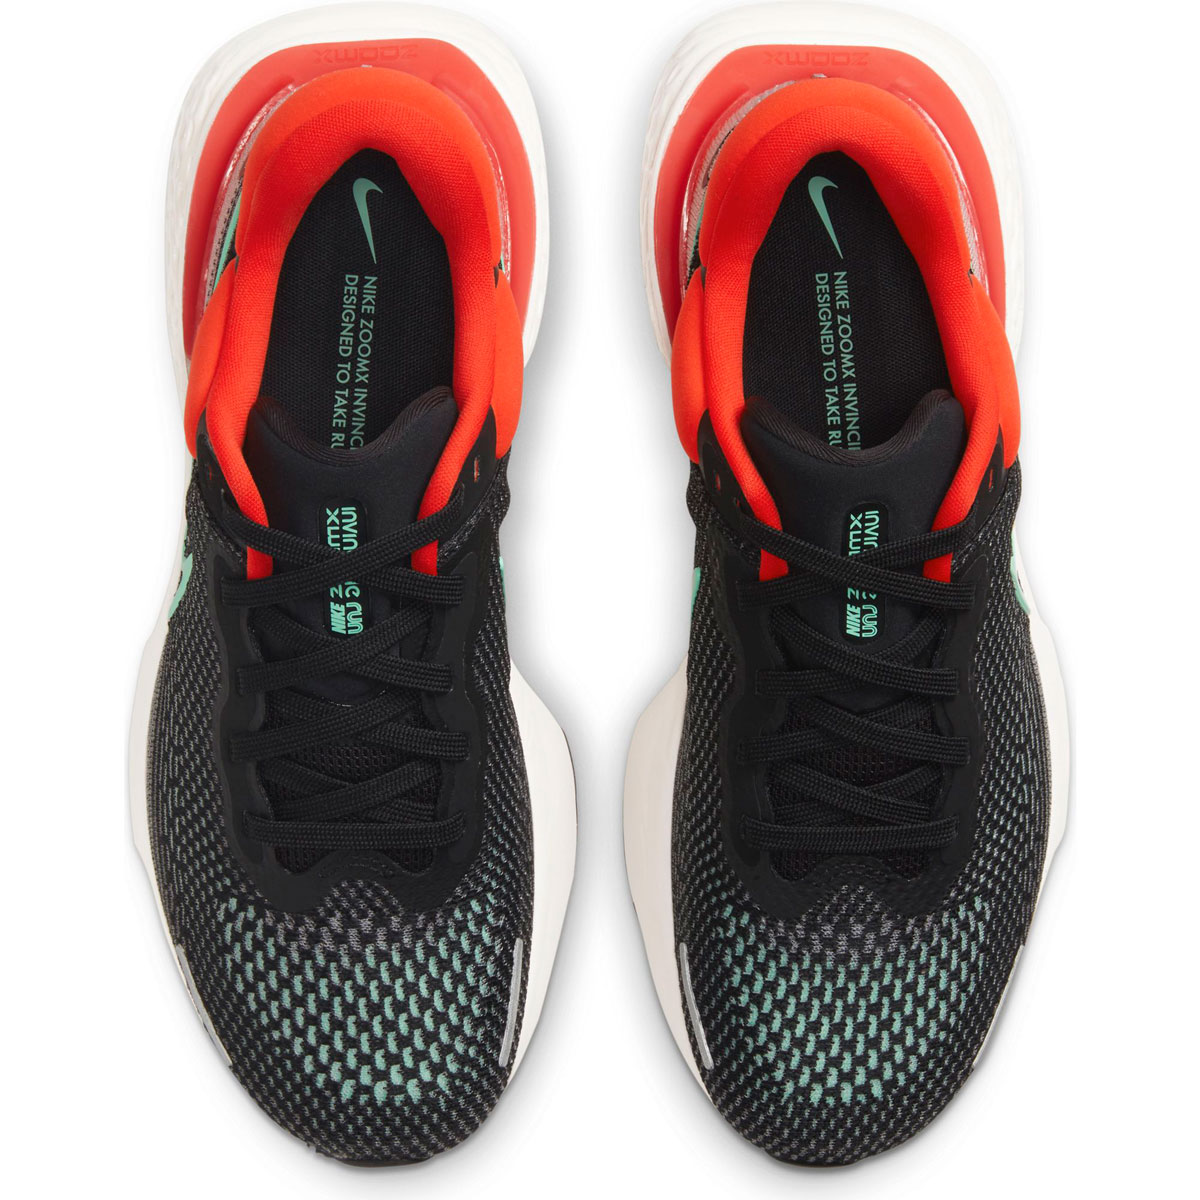 Men's Nike Zoomx Invincible Run FlyKnit Running Shoe - Color: Black/Green Glow/Chile Red - Size: 6 - Width: Regular, Black/Green Glow/Chile Red, large, image 3